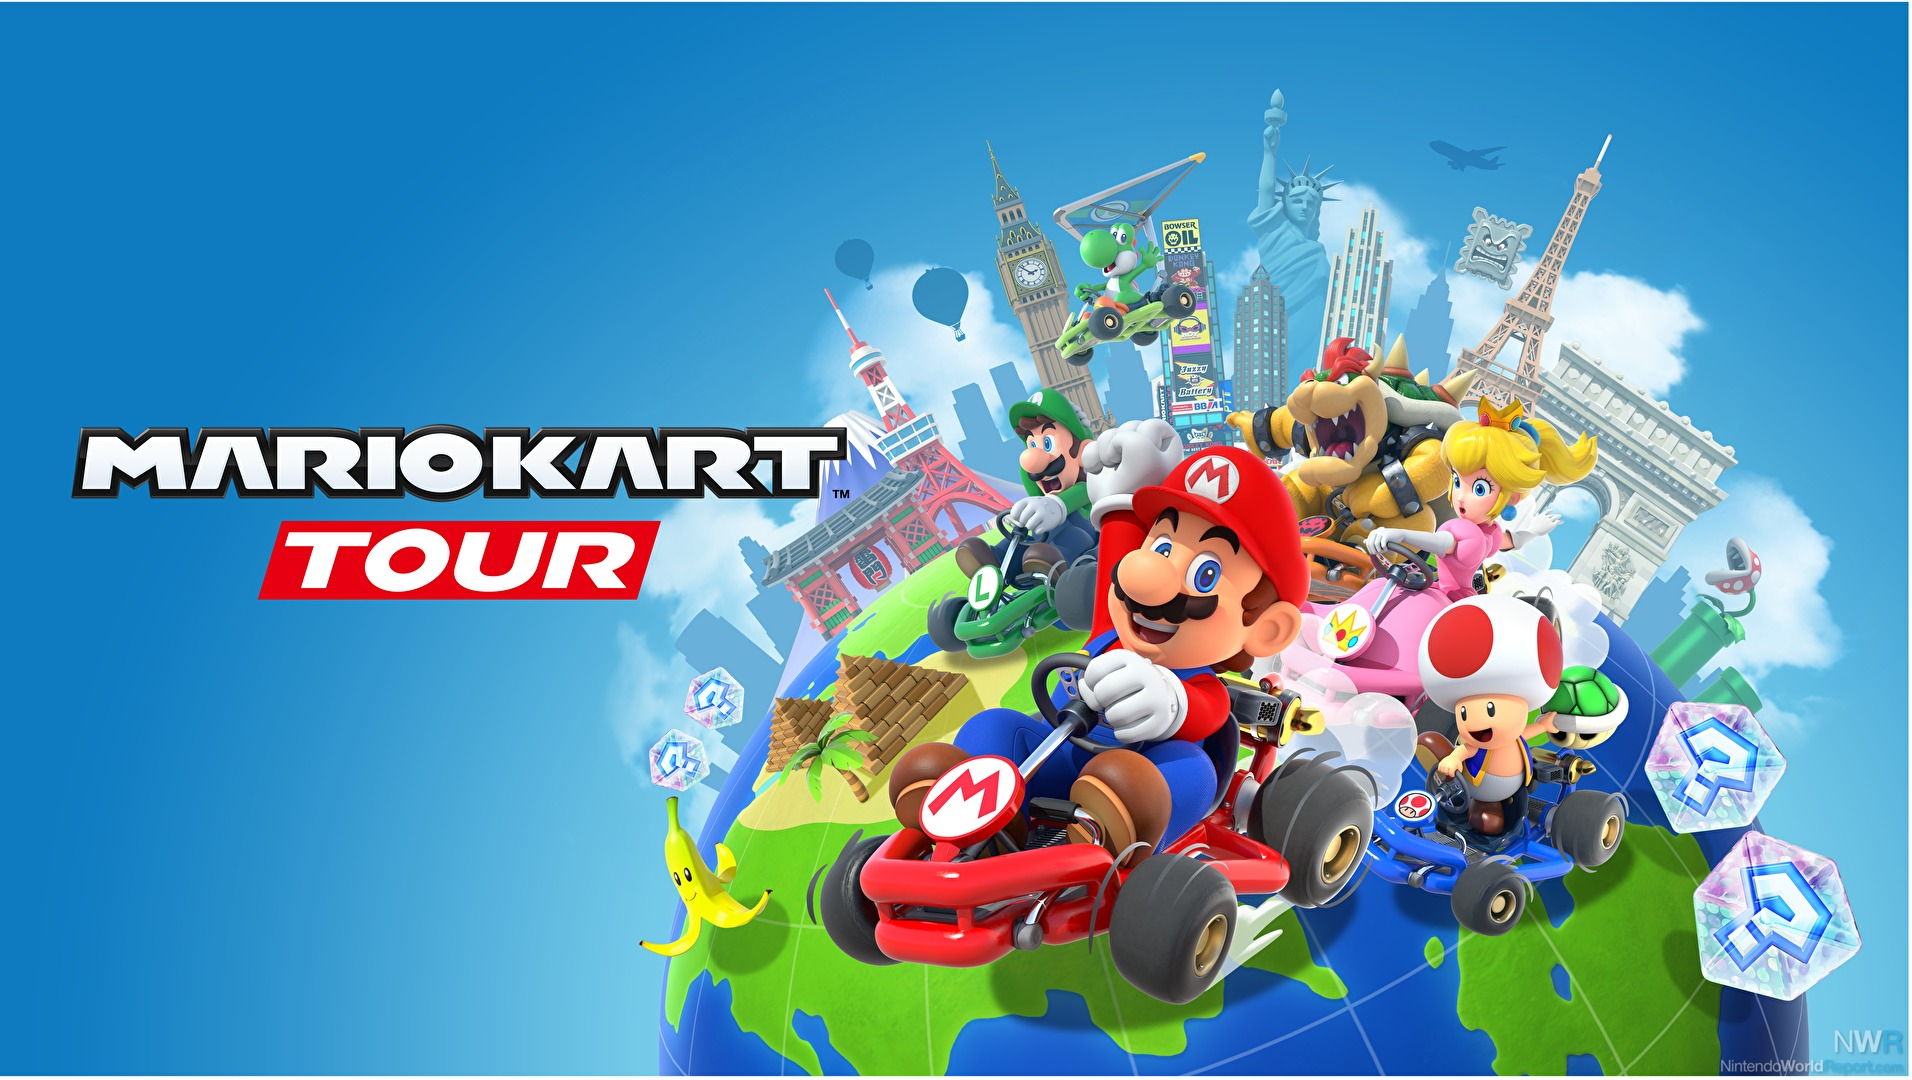 Mario Kart Tour Hands-on Preview - Hands-on Preview